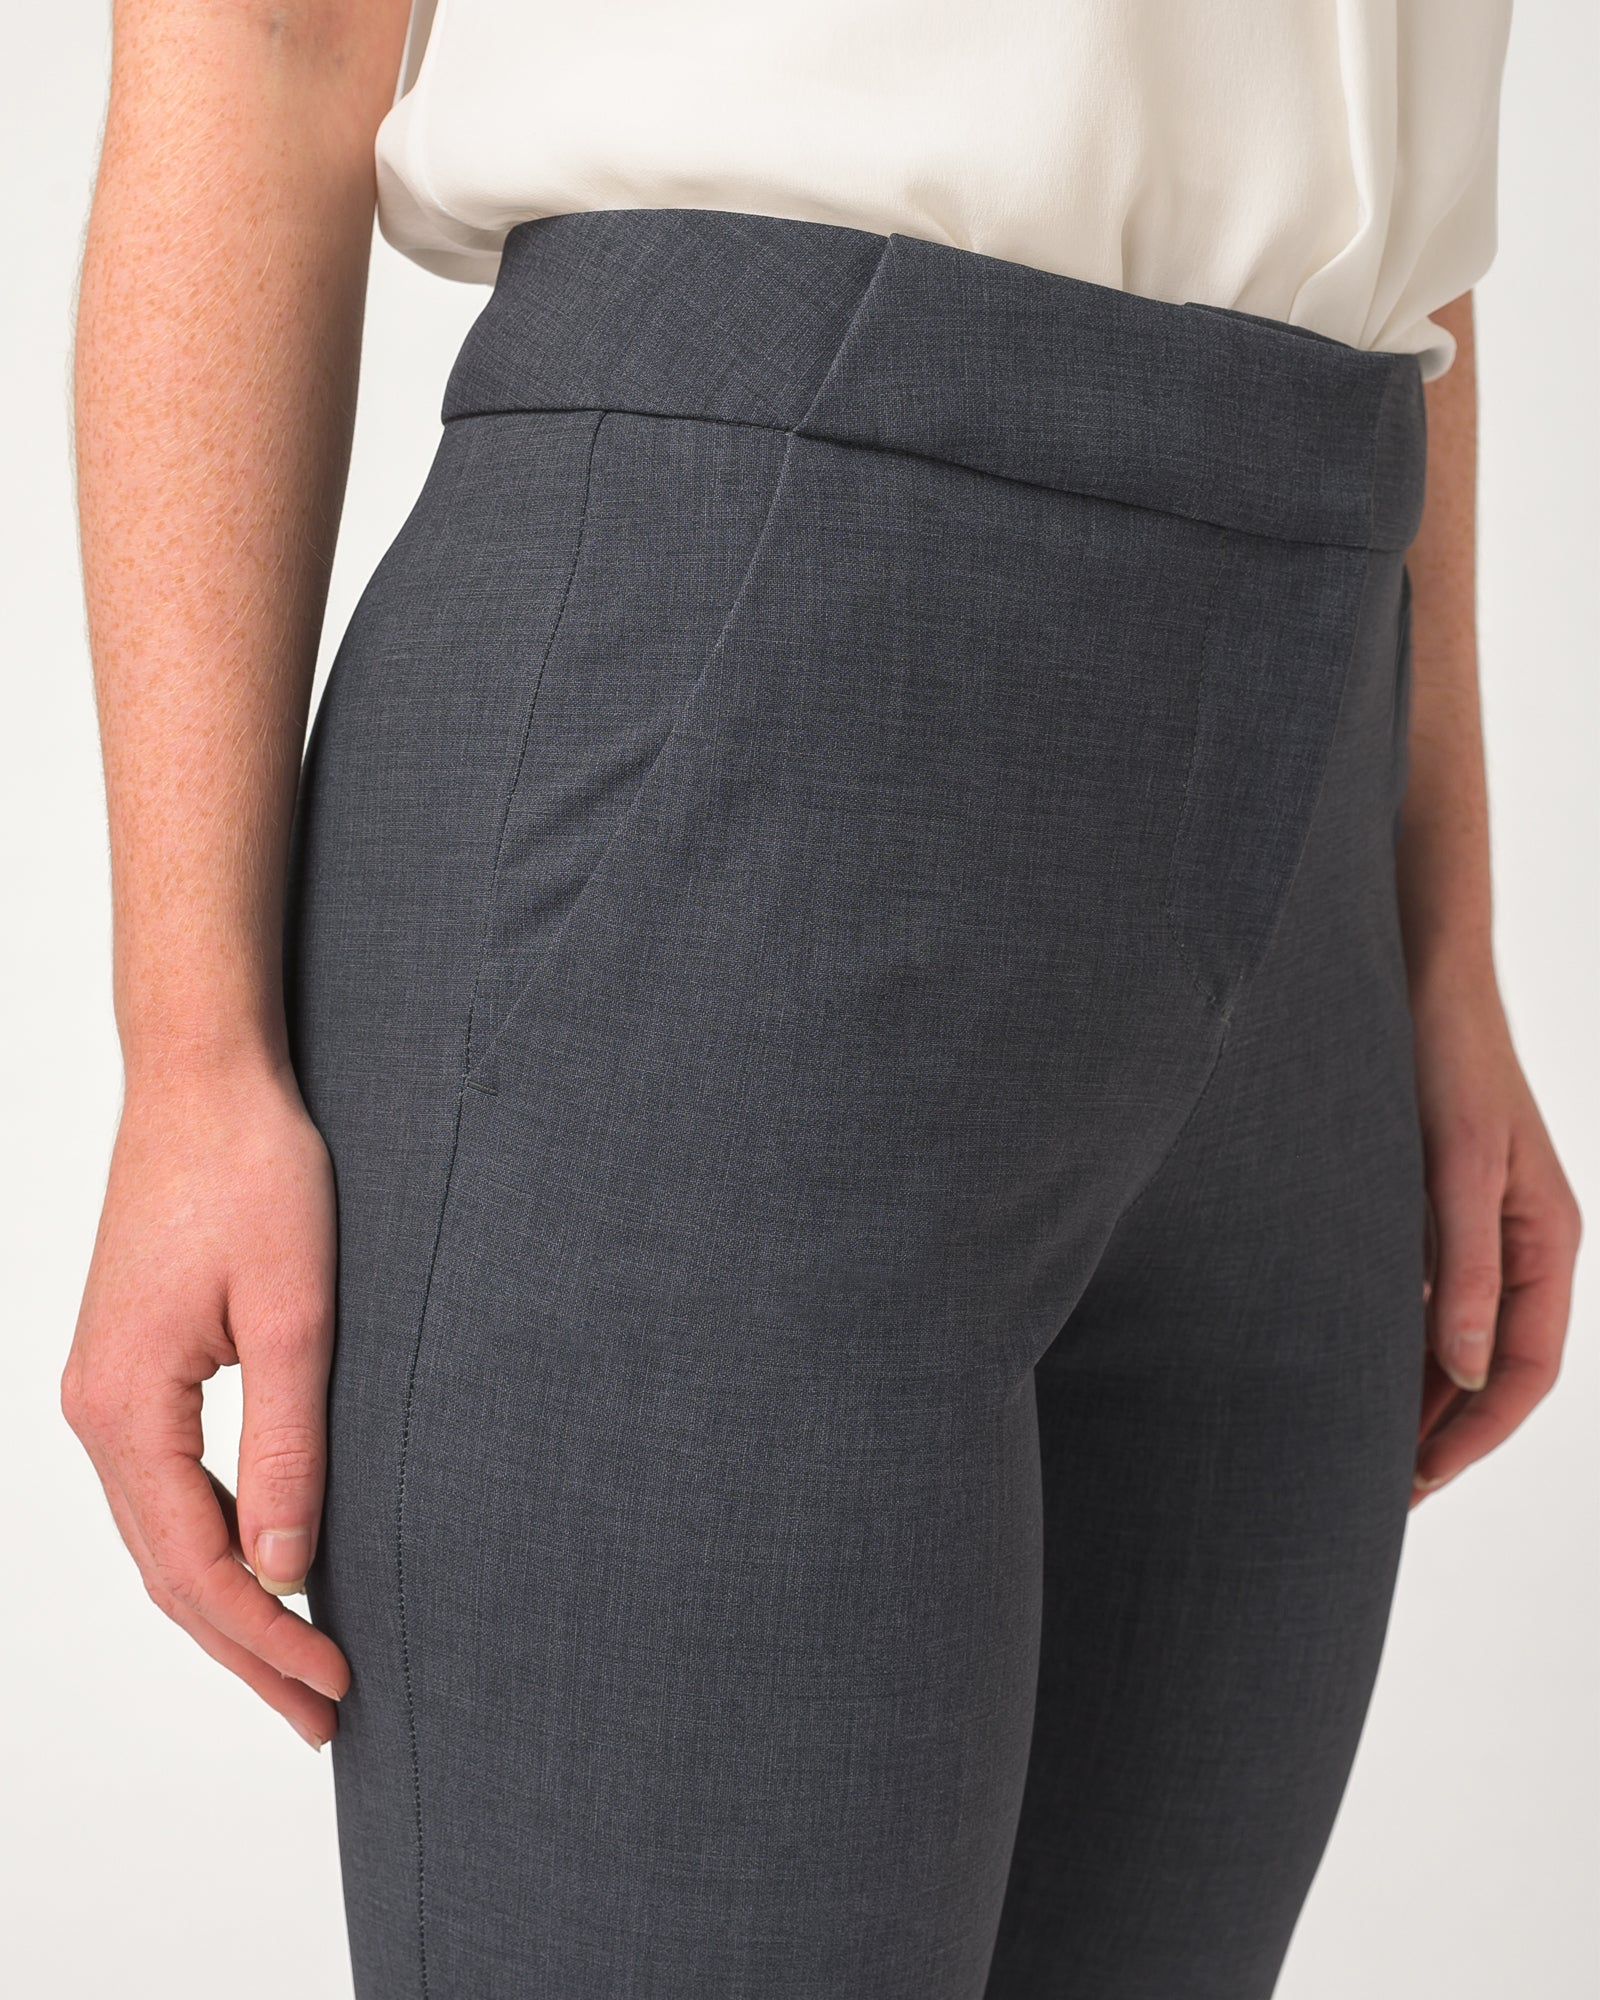 Power Move Trousers Charcoal Lightweight